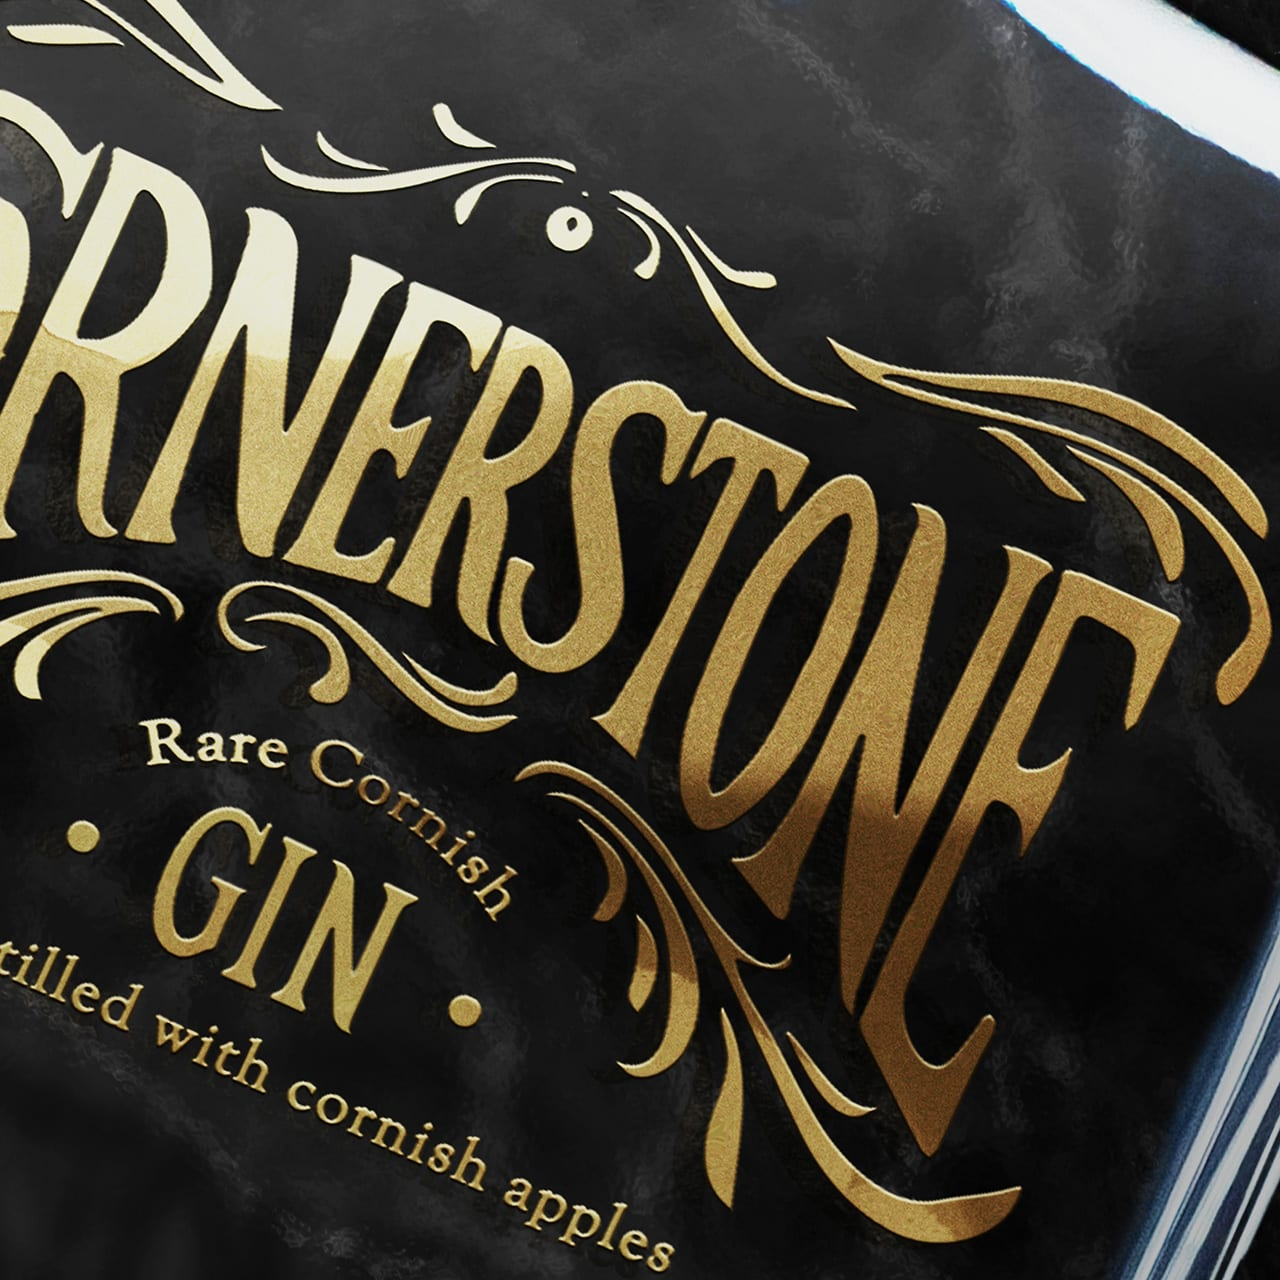 A close-up image of the Cornerstone gin bottle branding